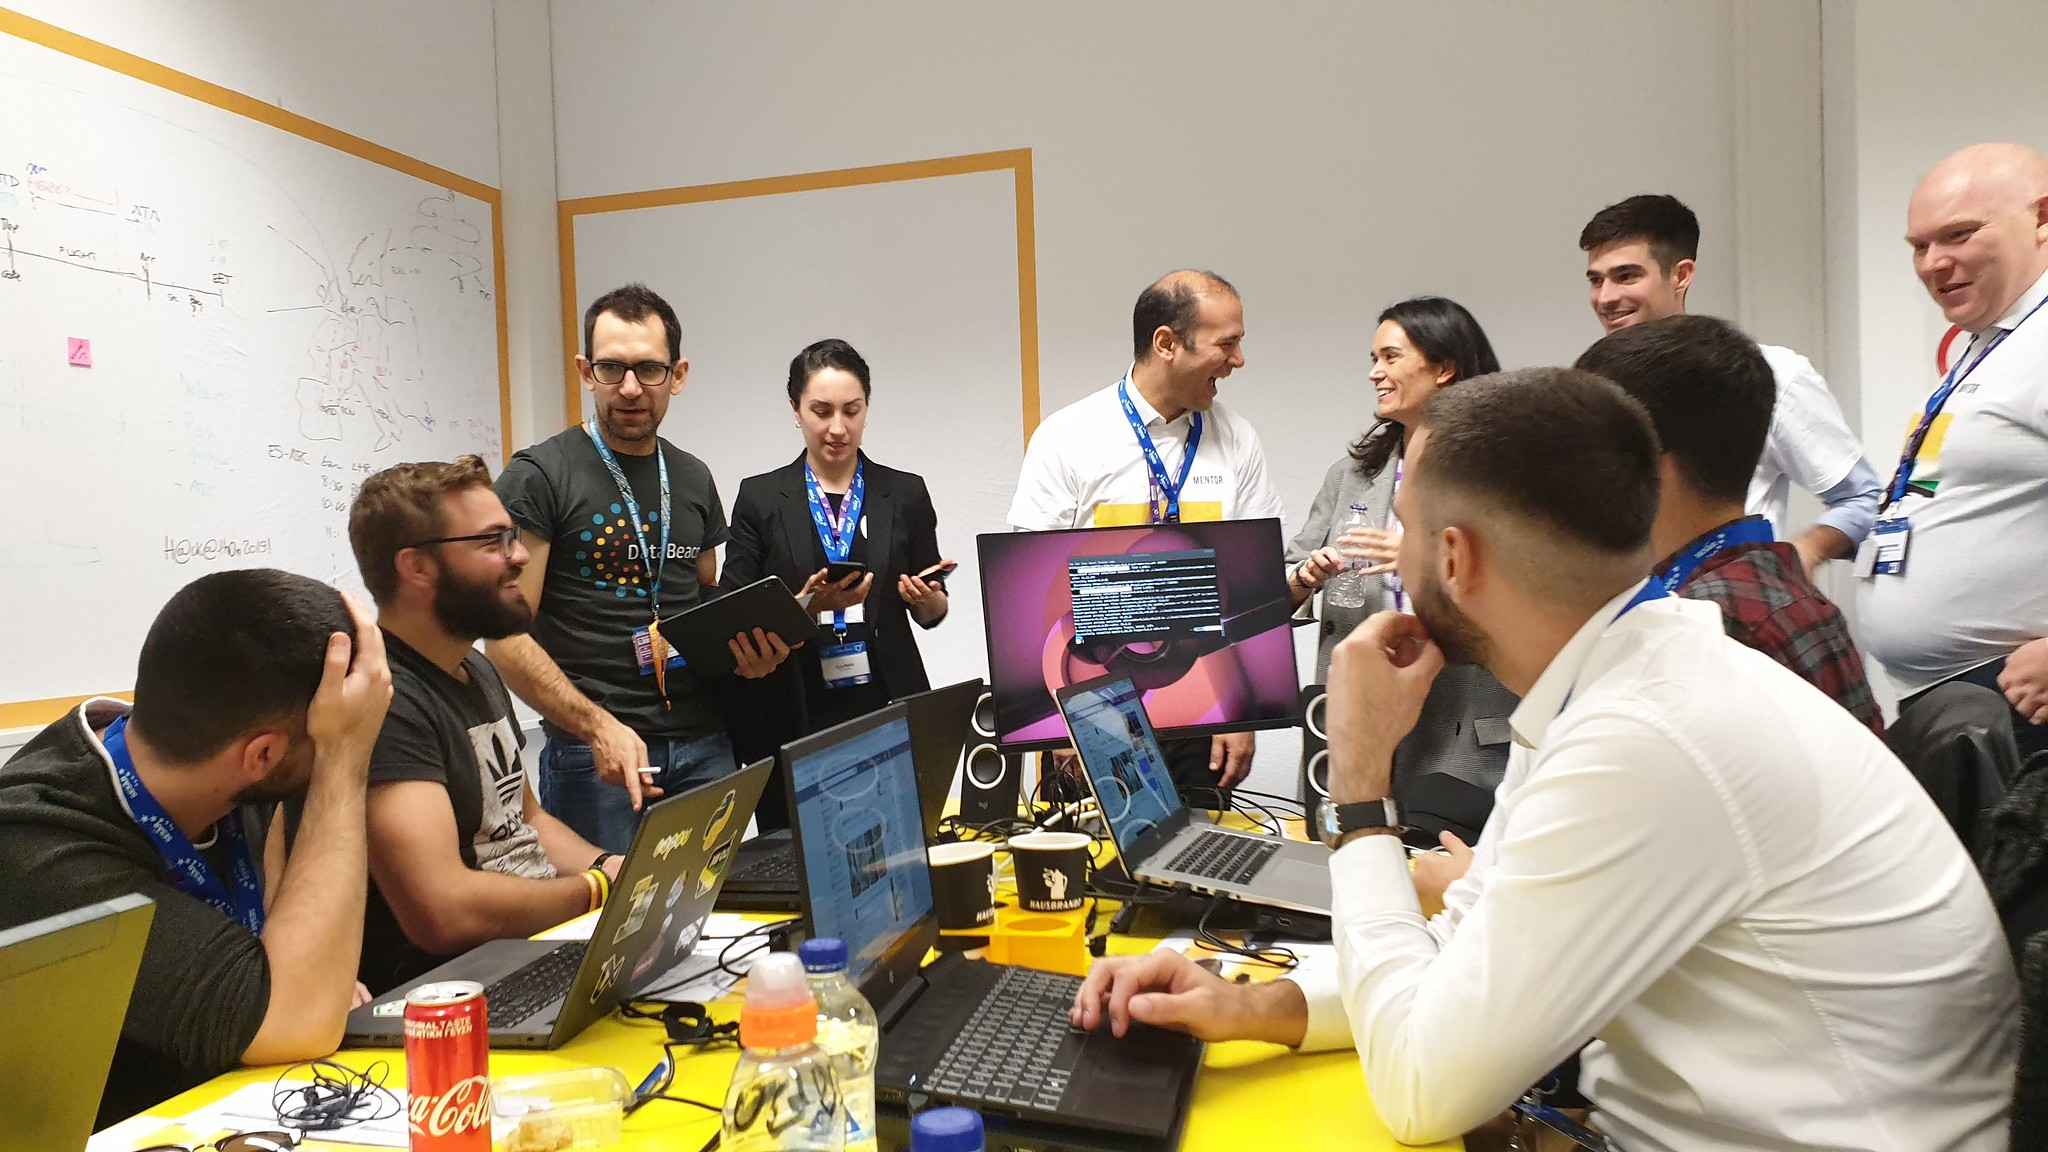 8 Essential Tips on Prepping for Your First Ever Hackathon!